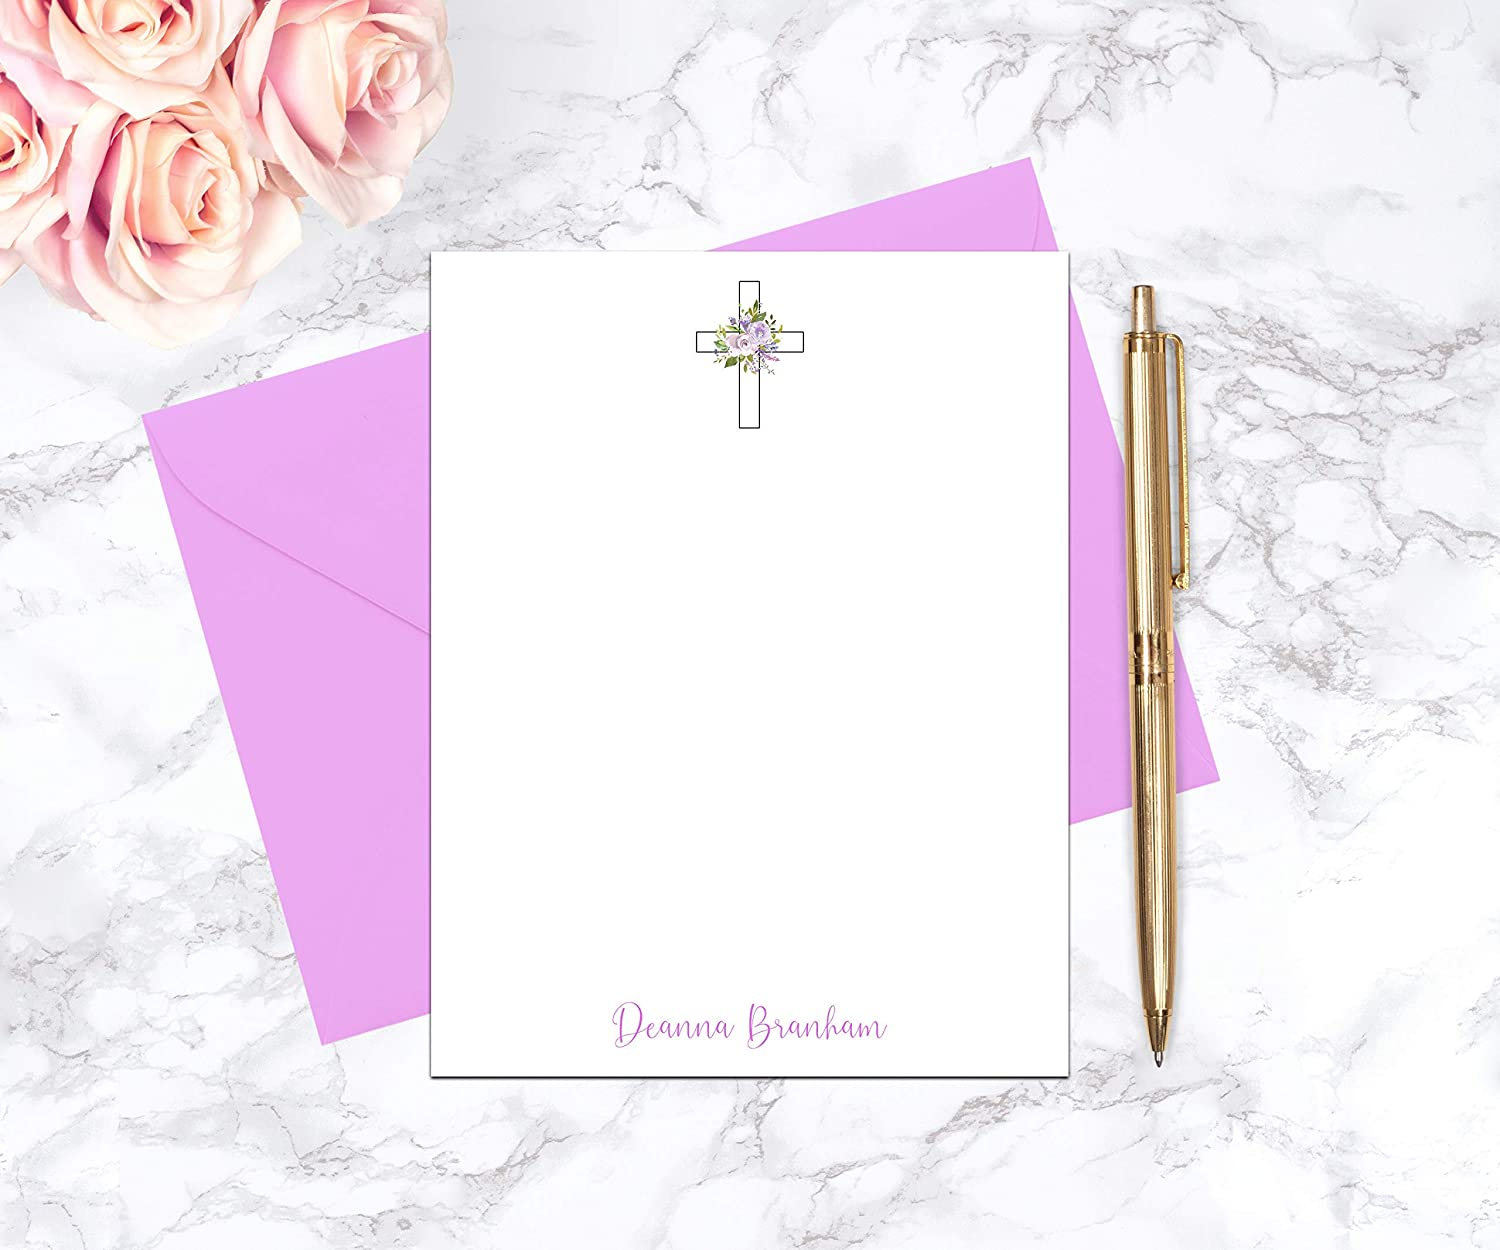 Personalized Religious OFFicial Gifts for Women Washington Mall Paper Stationa Cross and